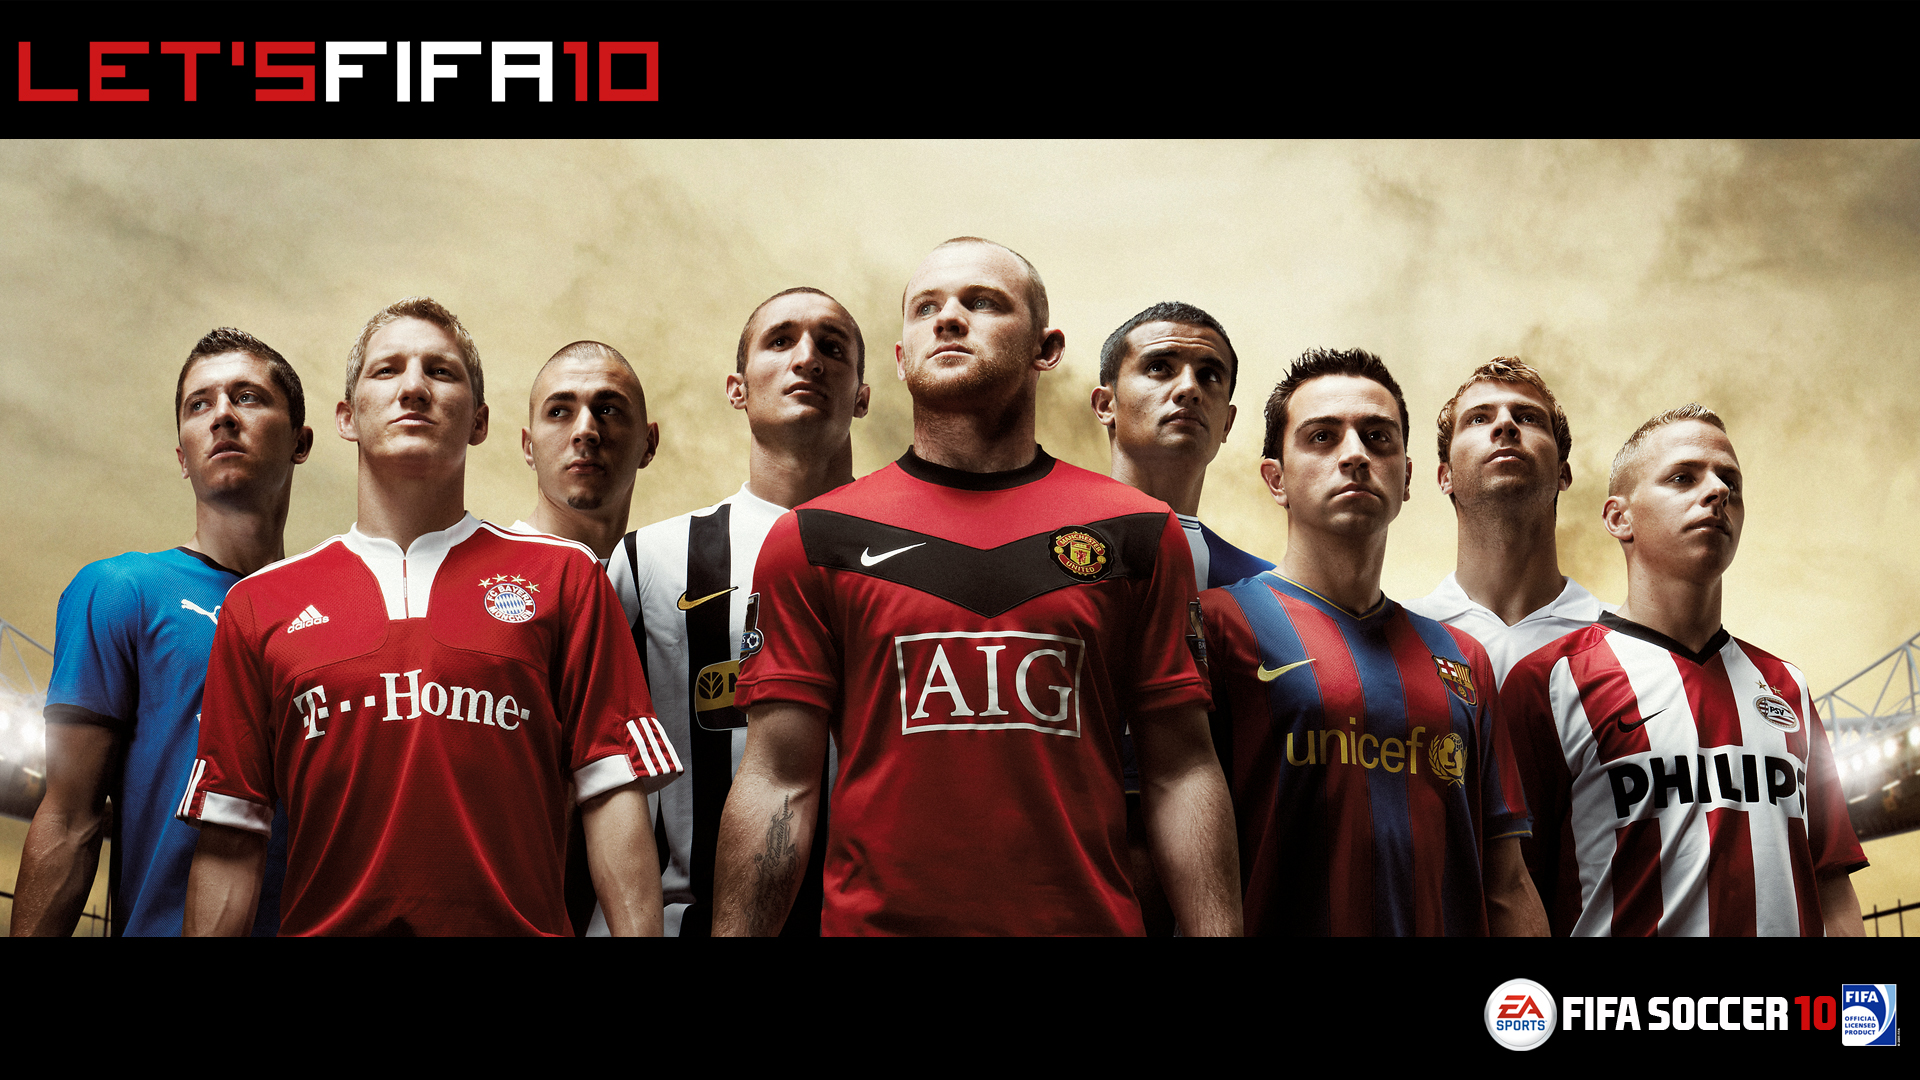 Manchester united mobile wallpapers FIFASoccer10 Wallpaper HD